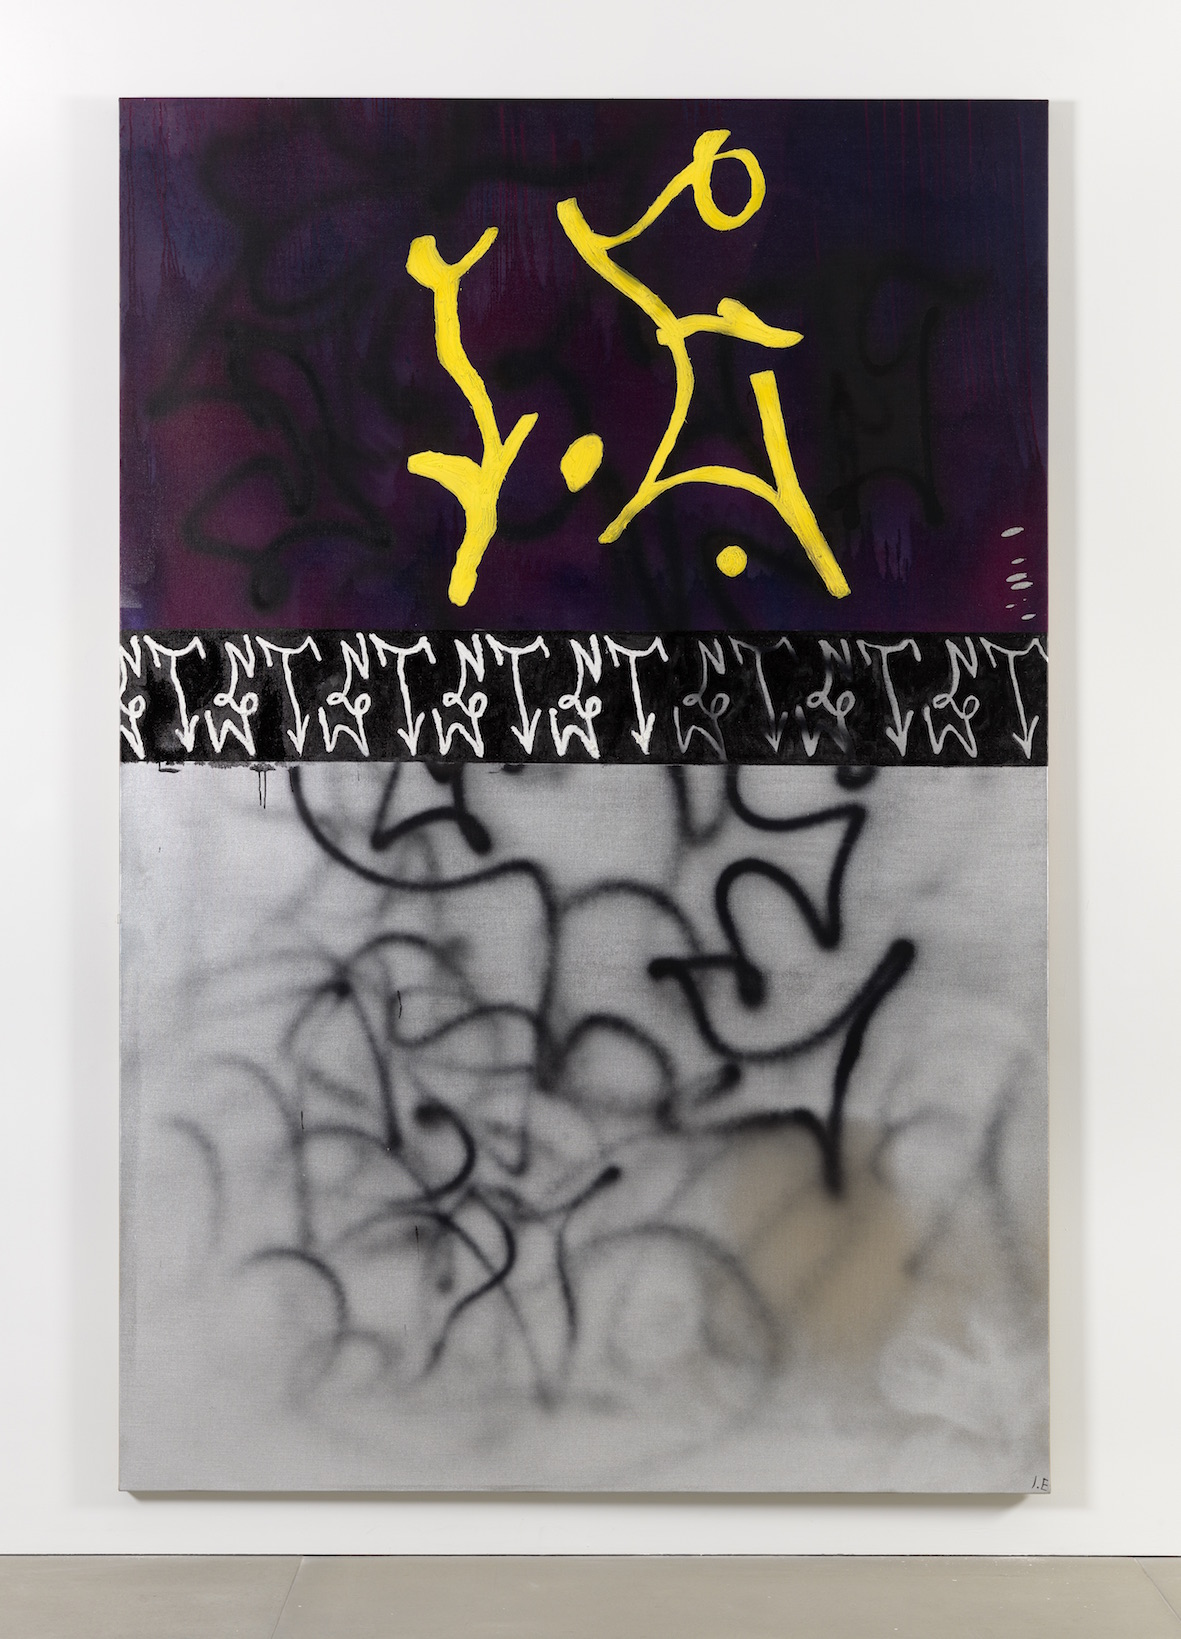 The Startling Mystery In Such Wasting Dwindle D for Dasein 2014 Molotow spray-paint, airbrushed ink and acrylic, puffy ink, Plastisol and acrylic on gesso primed linen 300 x 200 cm / 118.1 x 78.7 in